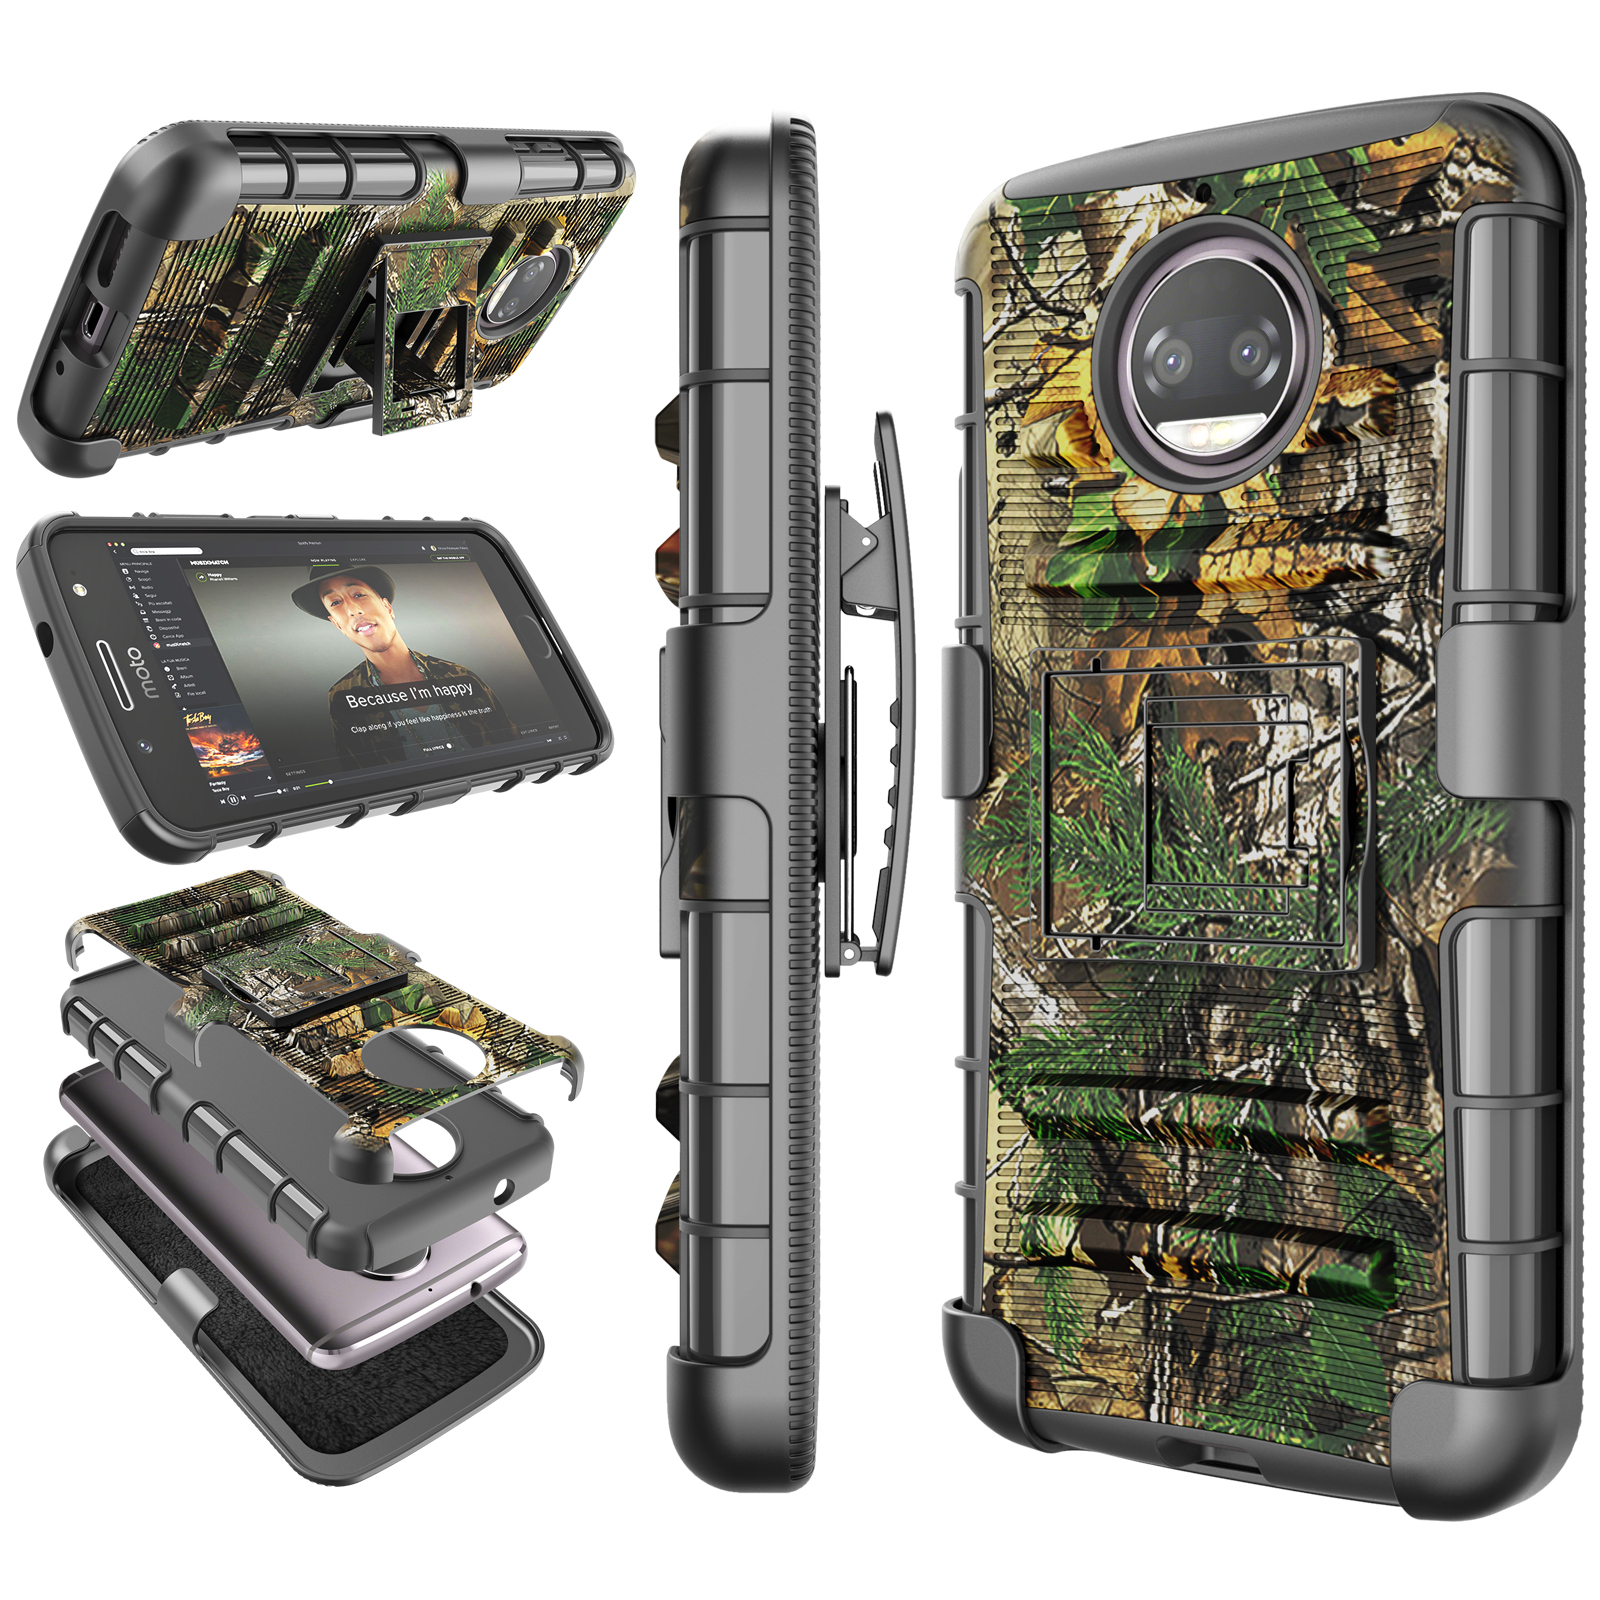 Moto G5S Plus Case, 2017 Motorola Moto G5S Plus Holster Clip, Tekcoo [Hoplite] Shock Absorbing [Camo Pine] Swivel Locking Belt Defender Heavy Full Body Kickstand Carrying Armor Camouflage Cases Cover